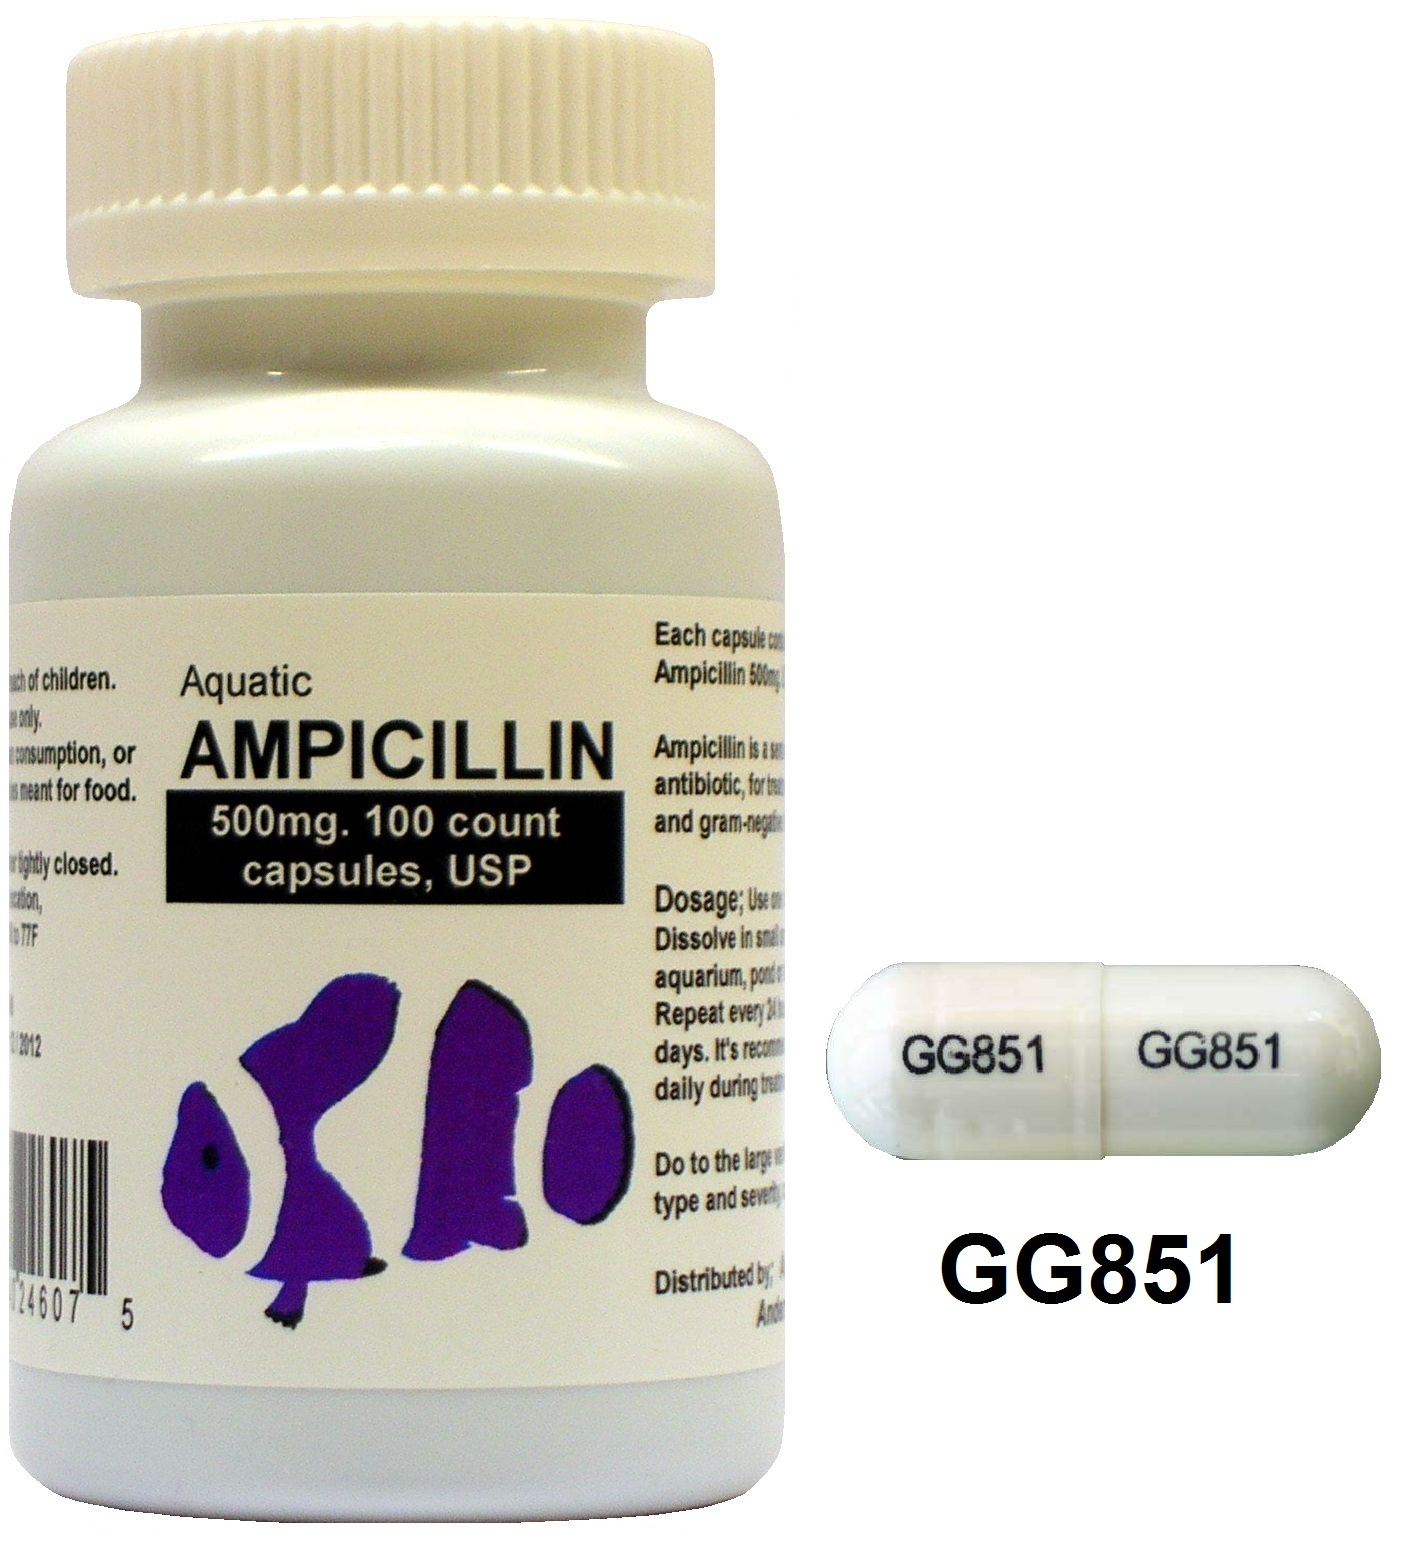 AMPICILLIN 500MG CAPSULES | Drugs.com